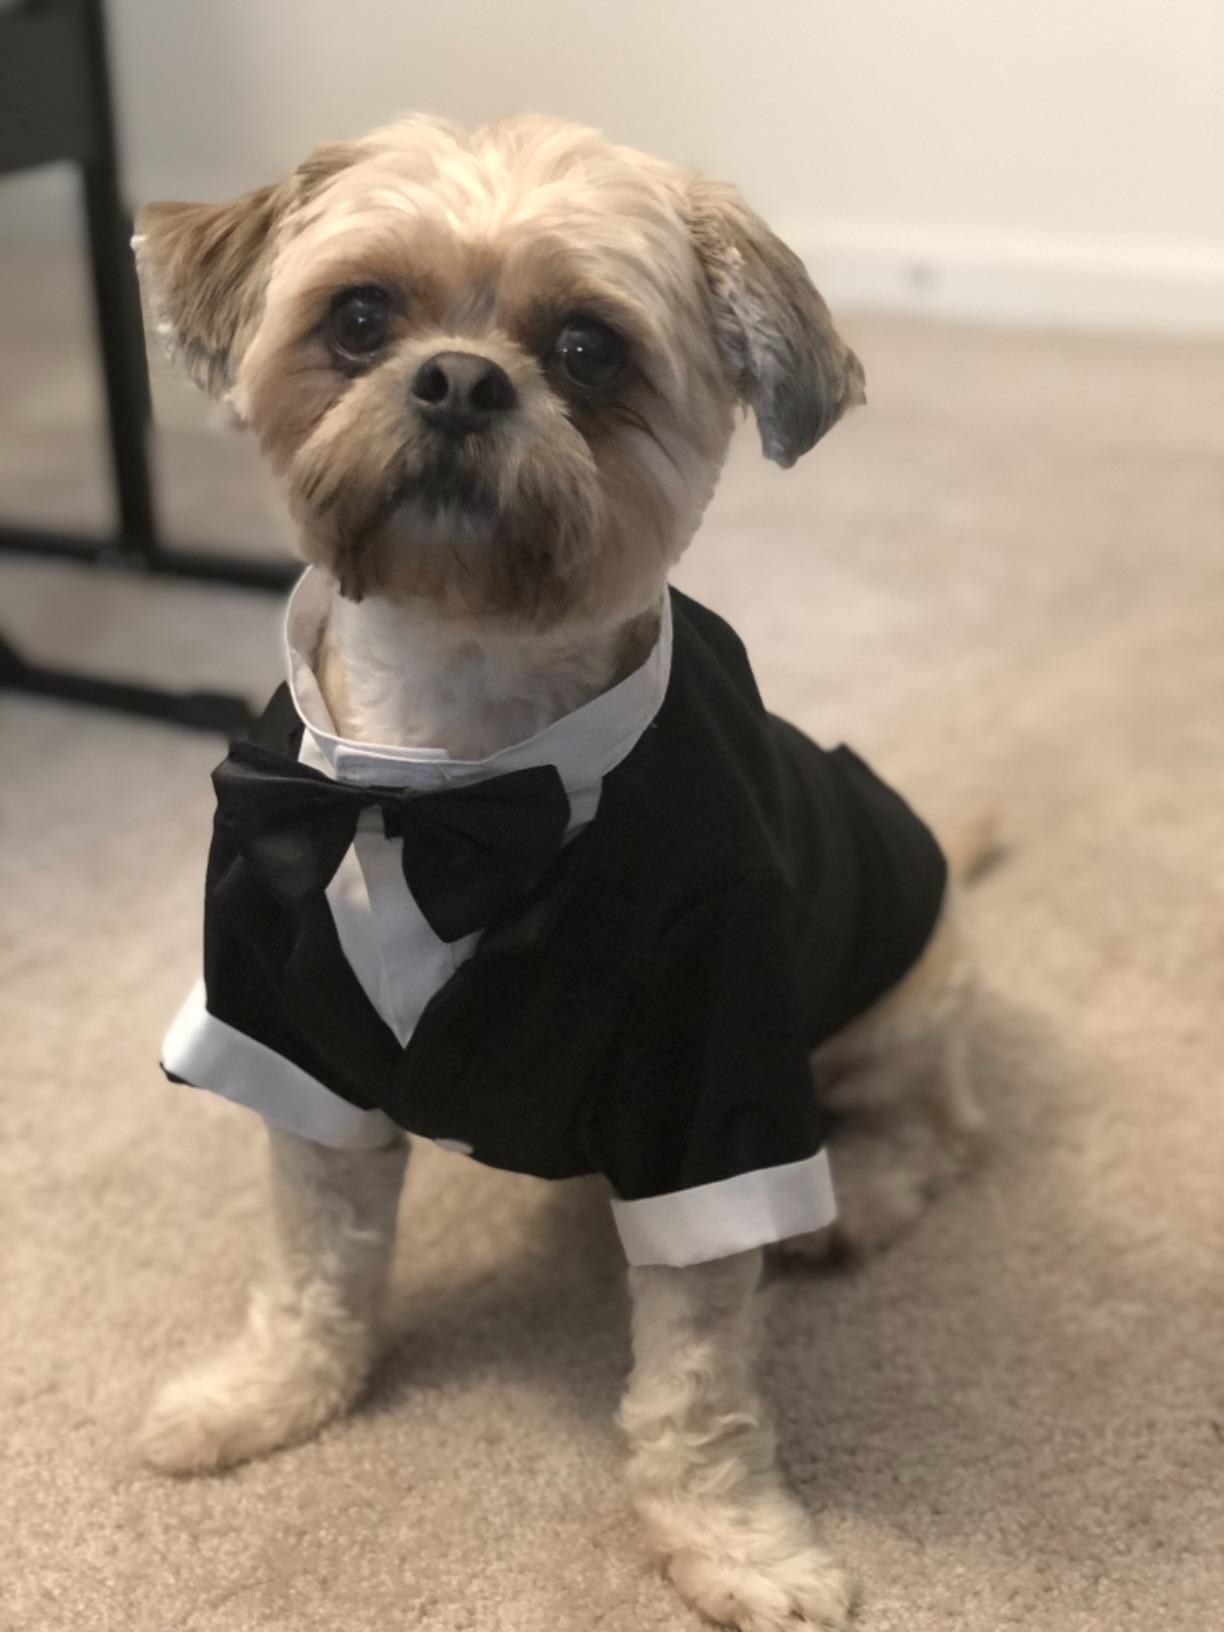 A dog in the tuxedo, which looks like a real tuxedo with black jacket, white shirt, and black bow tie